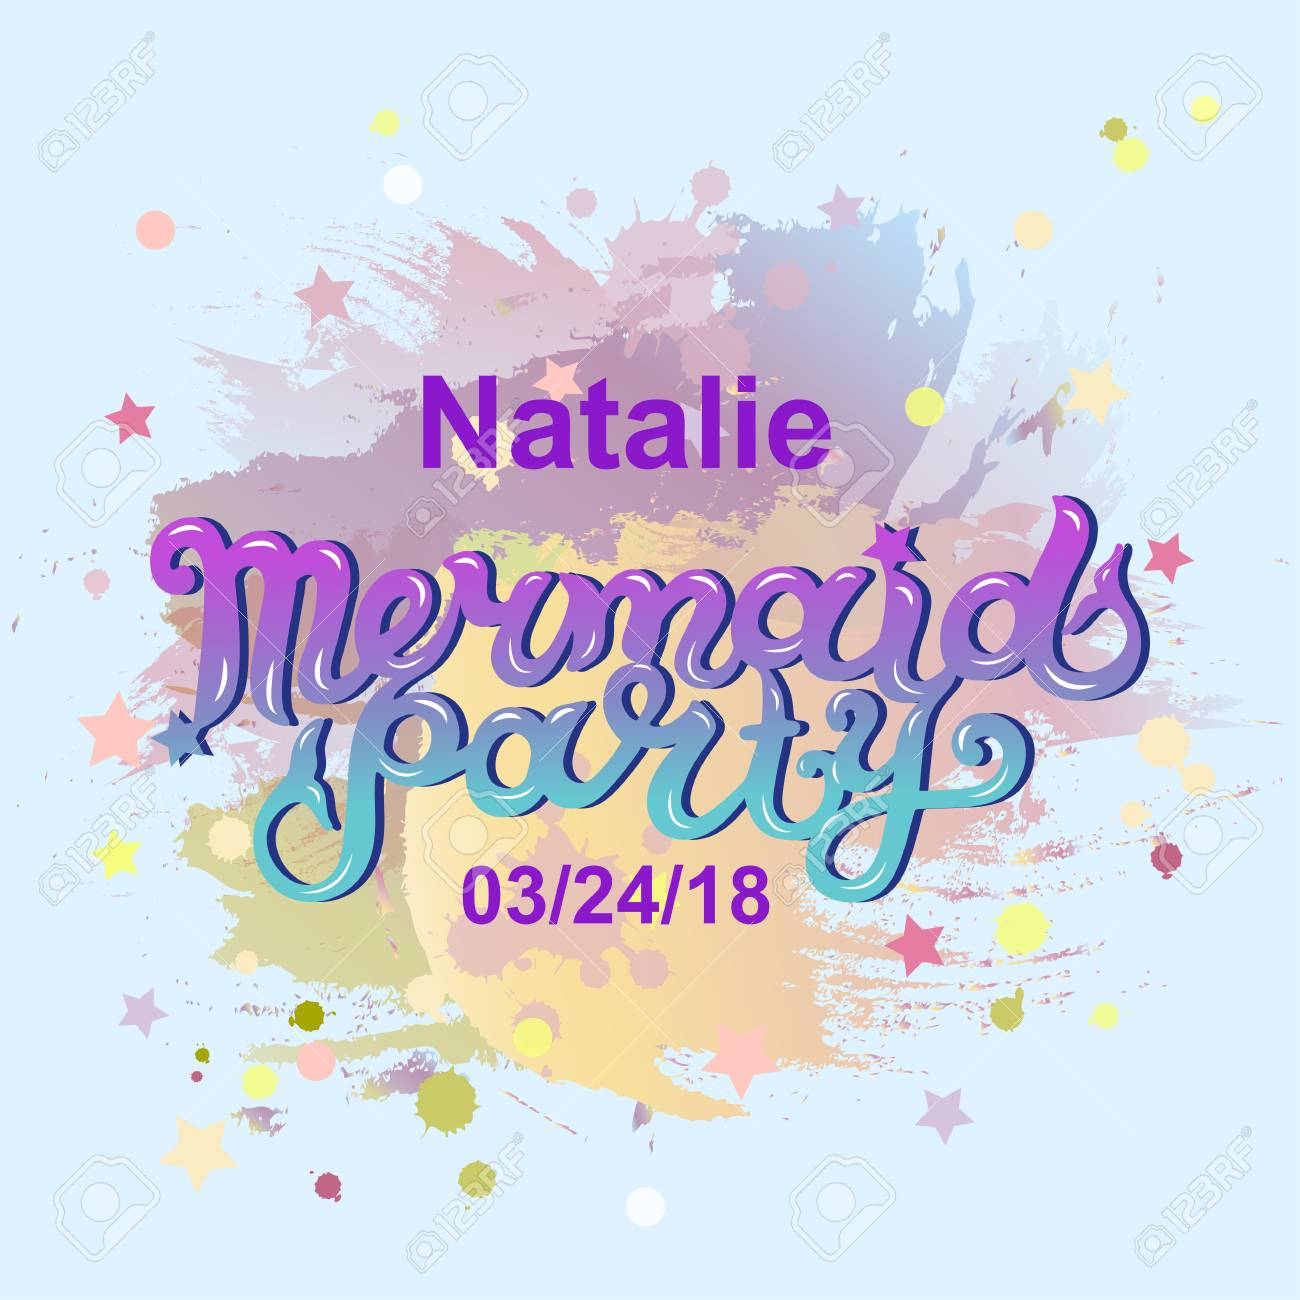 Welcome Mermaid Party Text Isolated On Pastel Colors Background